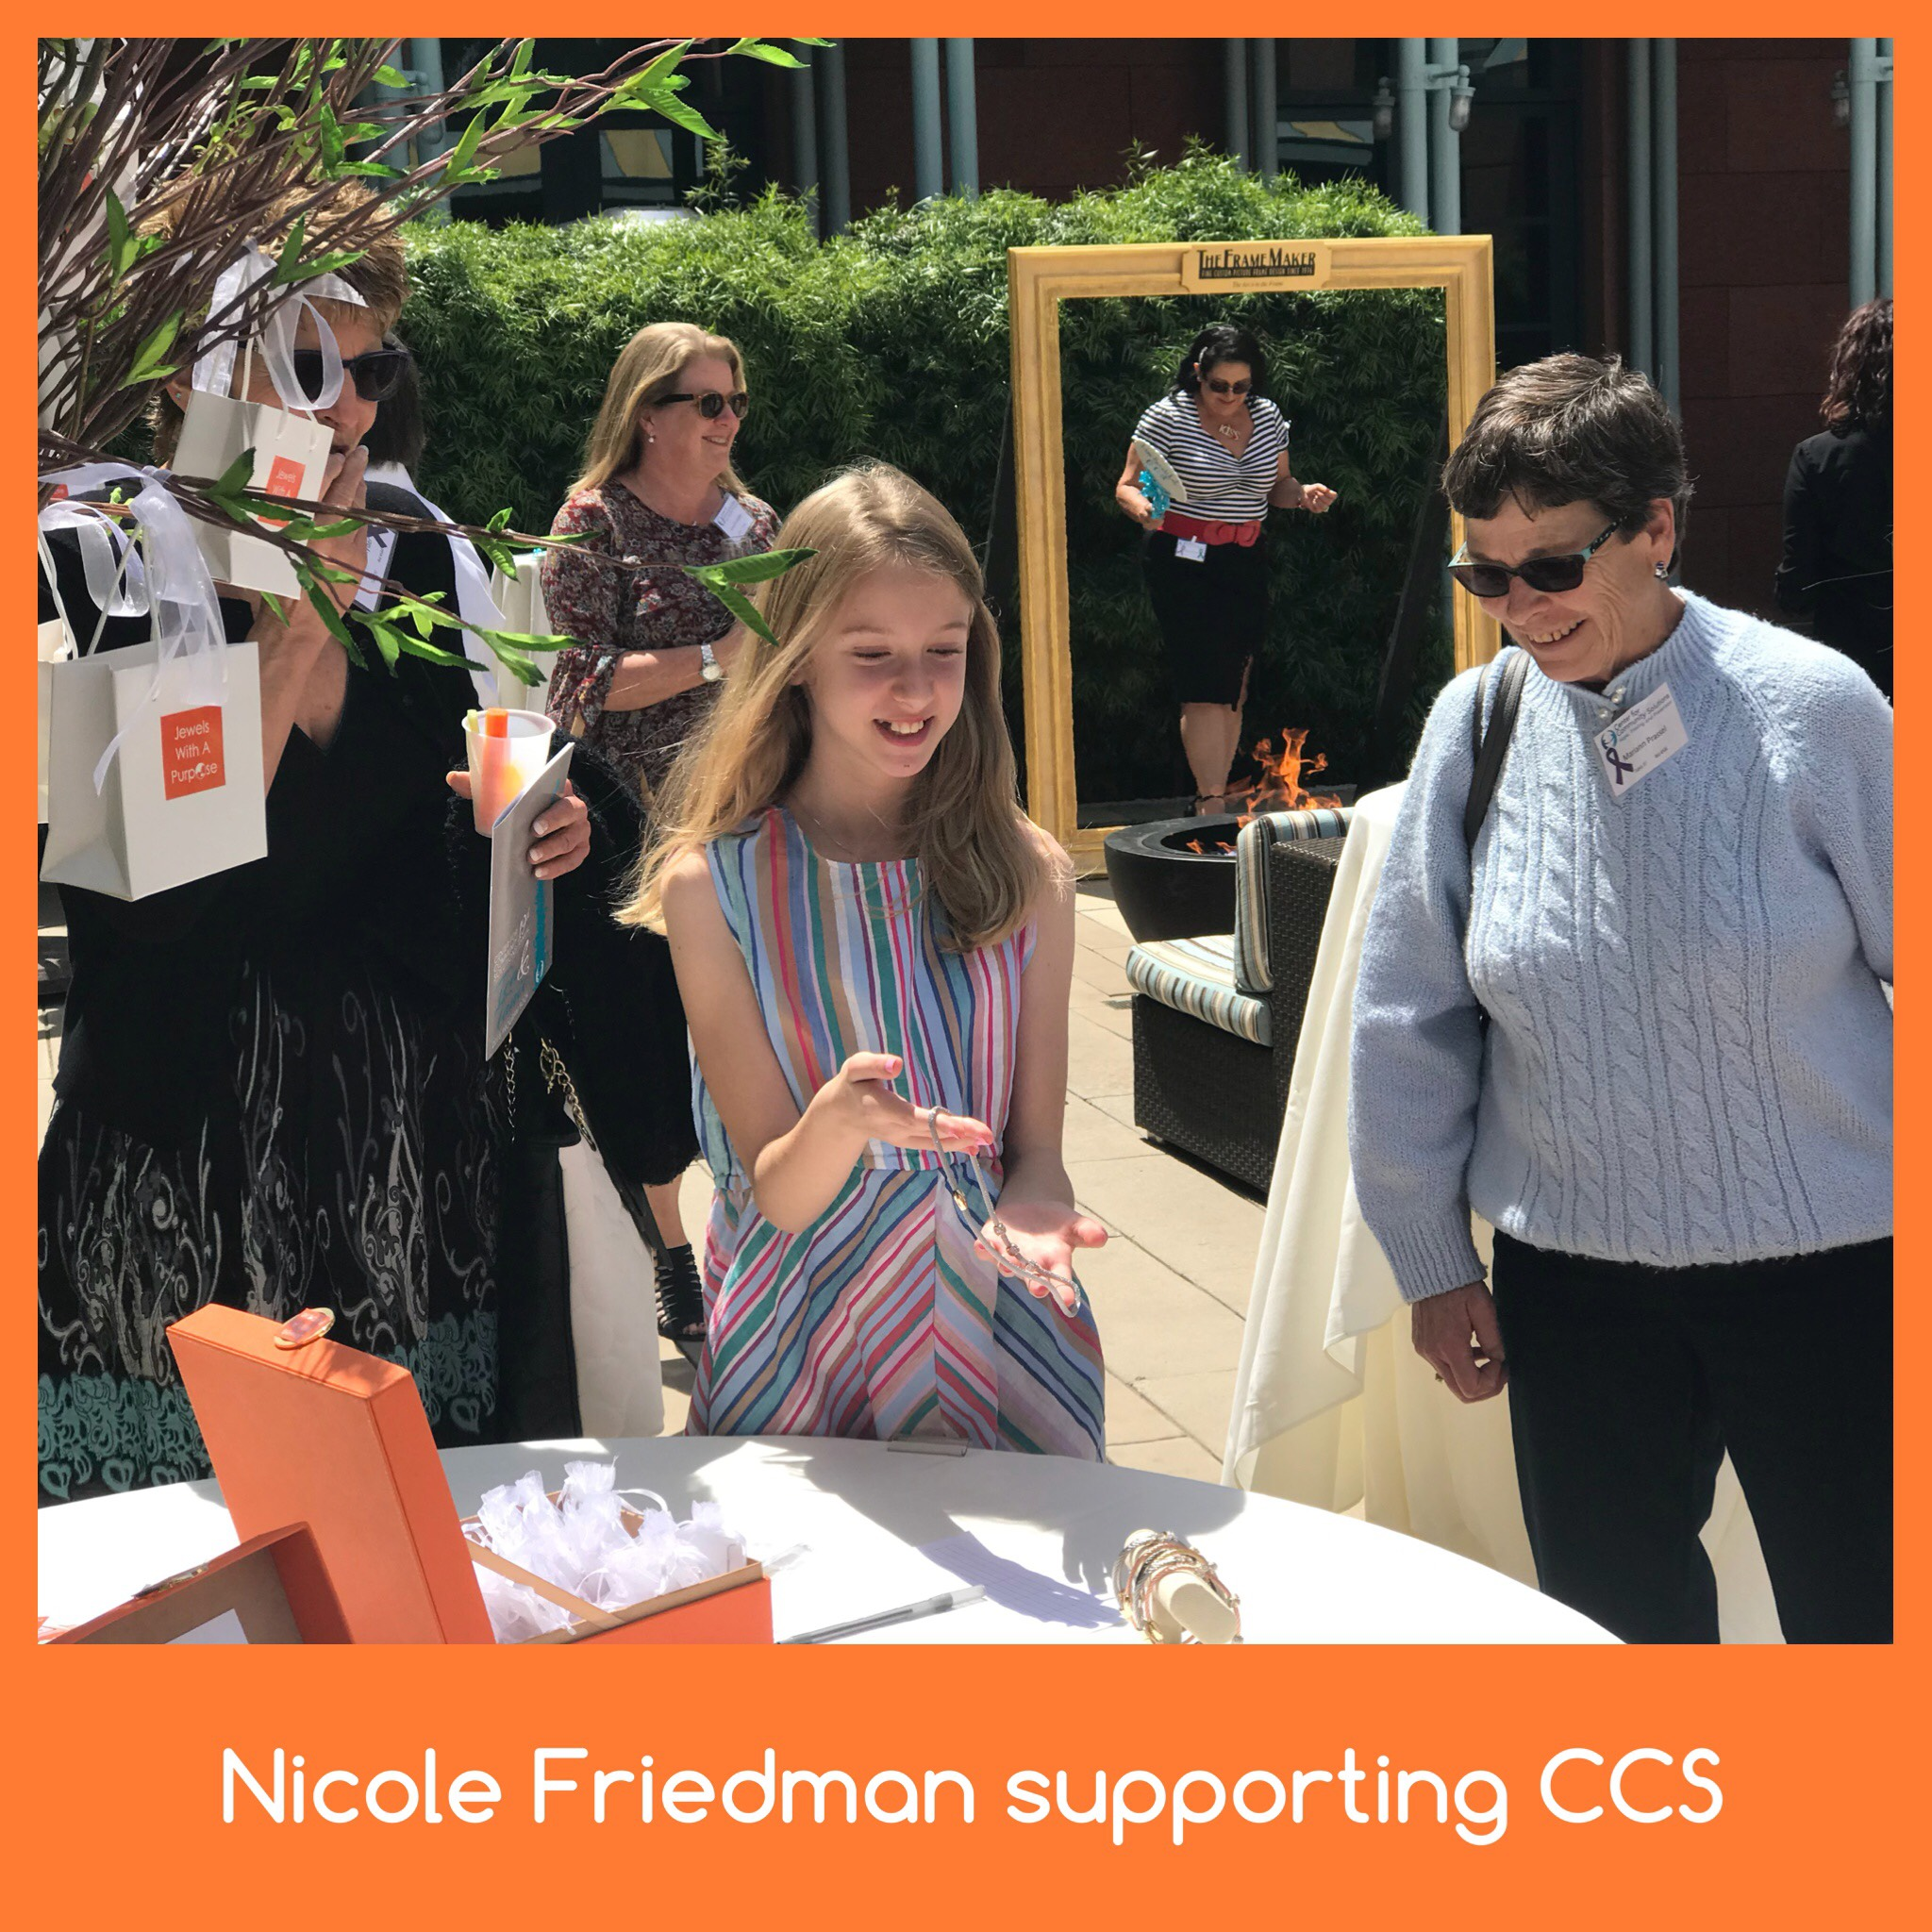 Nicole supporting CCS